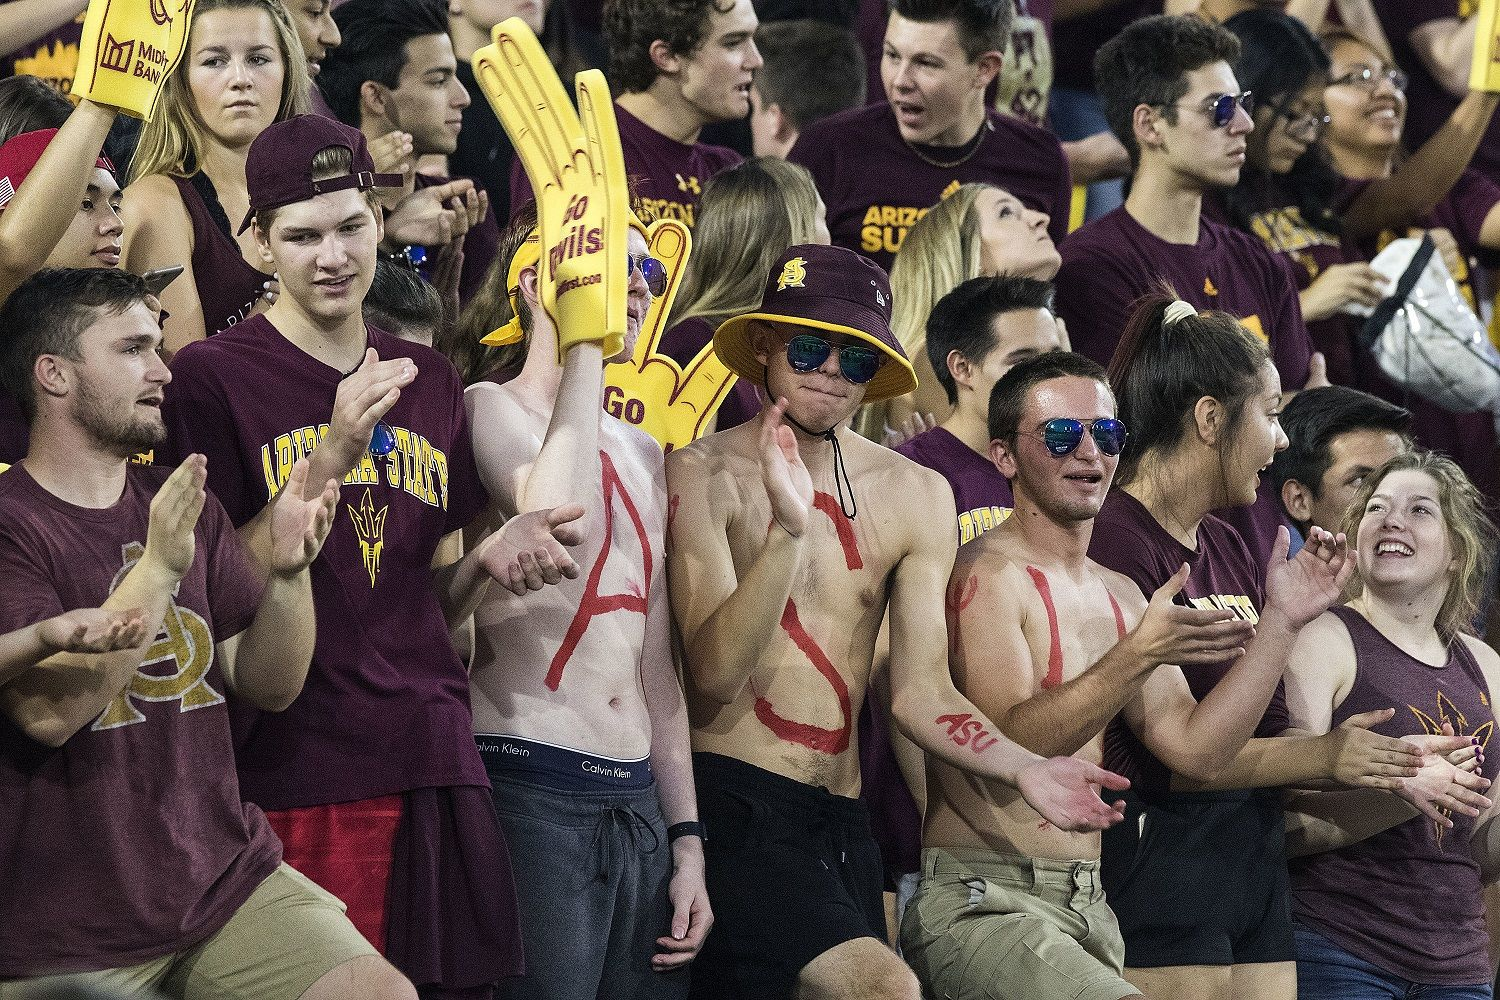 Arizona State fans do their thing during the first half of an NCAA college football game Thursday, Oct. 18, 2018, in Tempe, Ariz. (AP Photo/Darryl Webb)